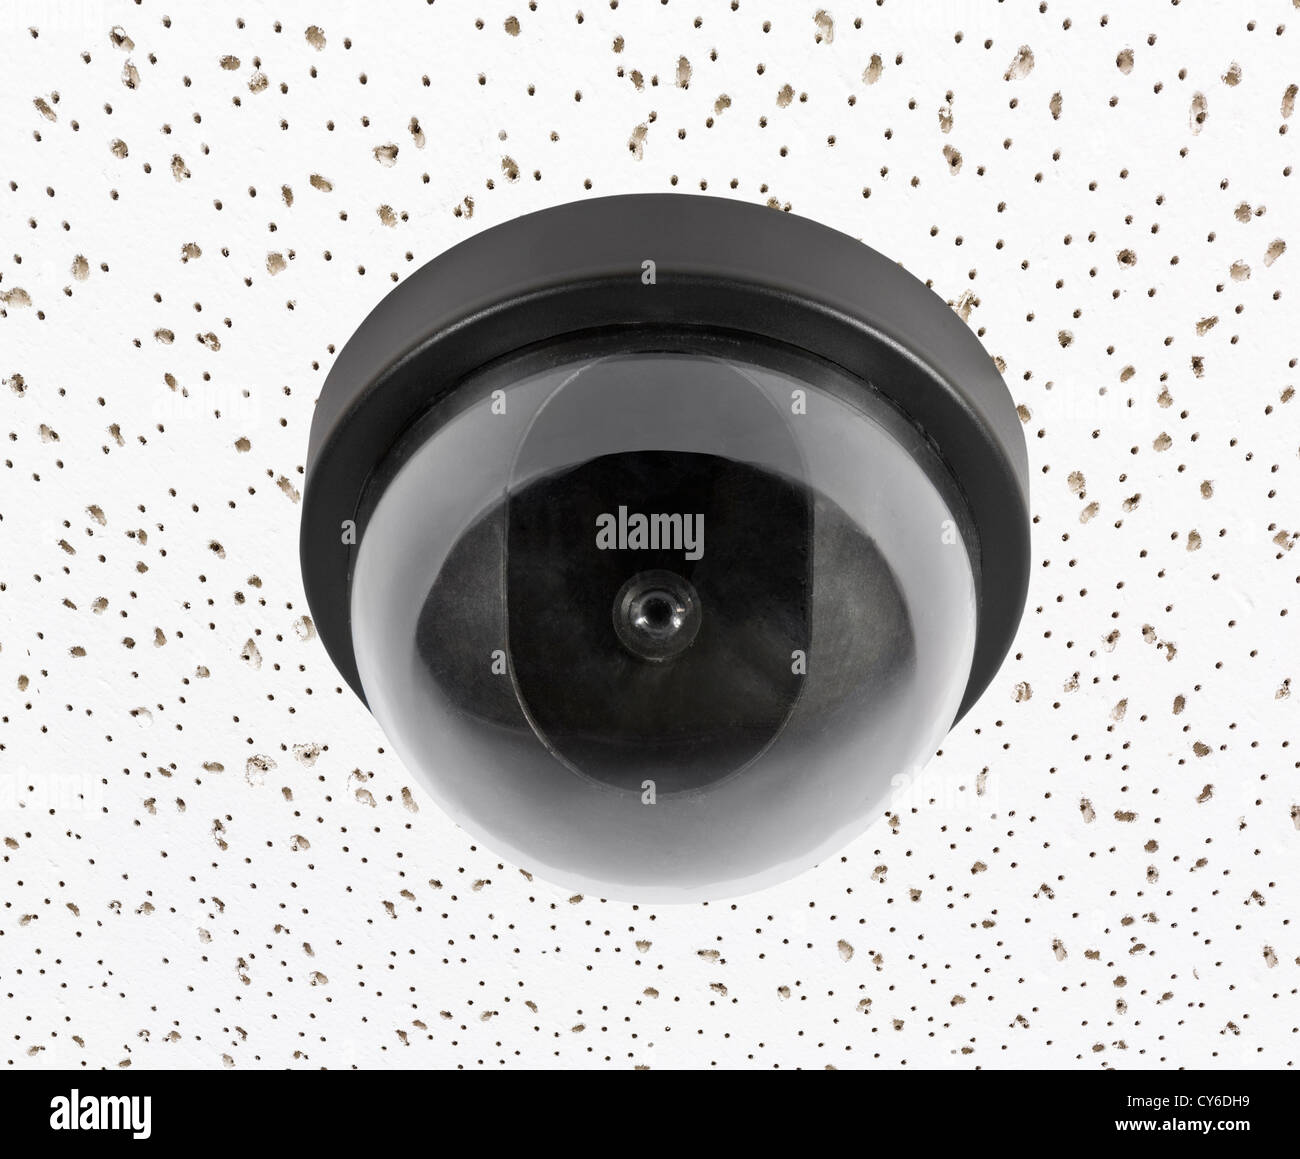 Security video surveillance camera globe on acoustic tile ceiling. - Stock Image